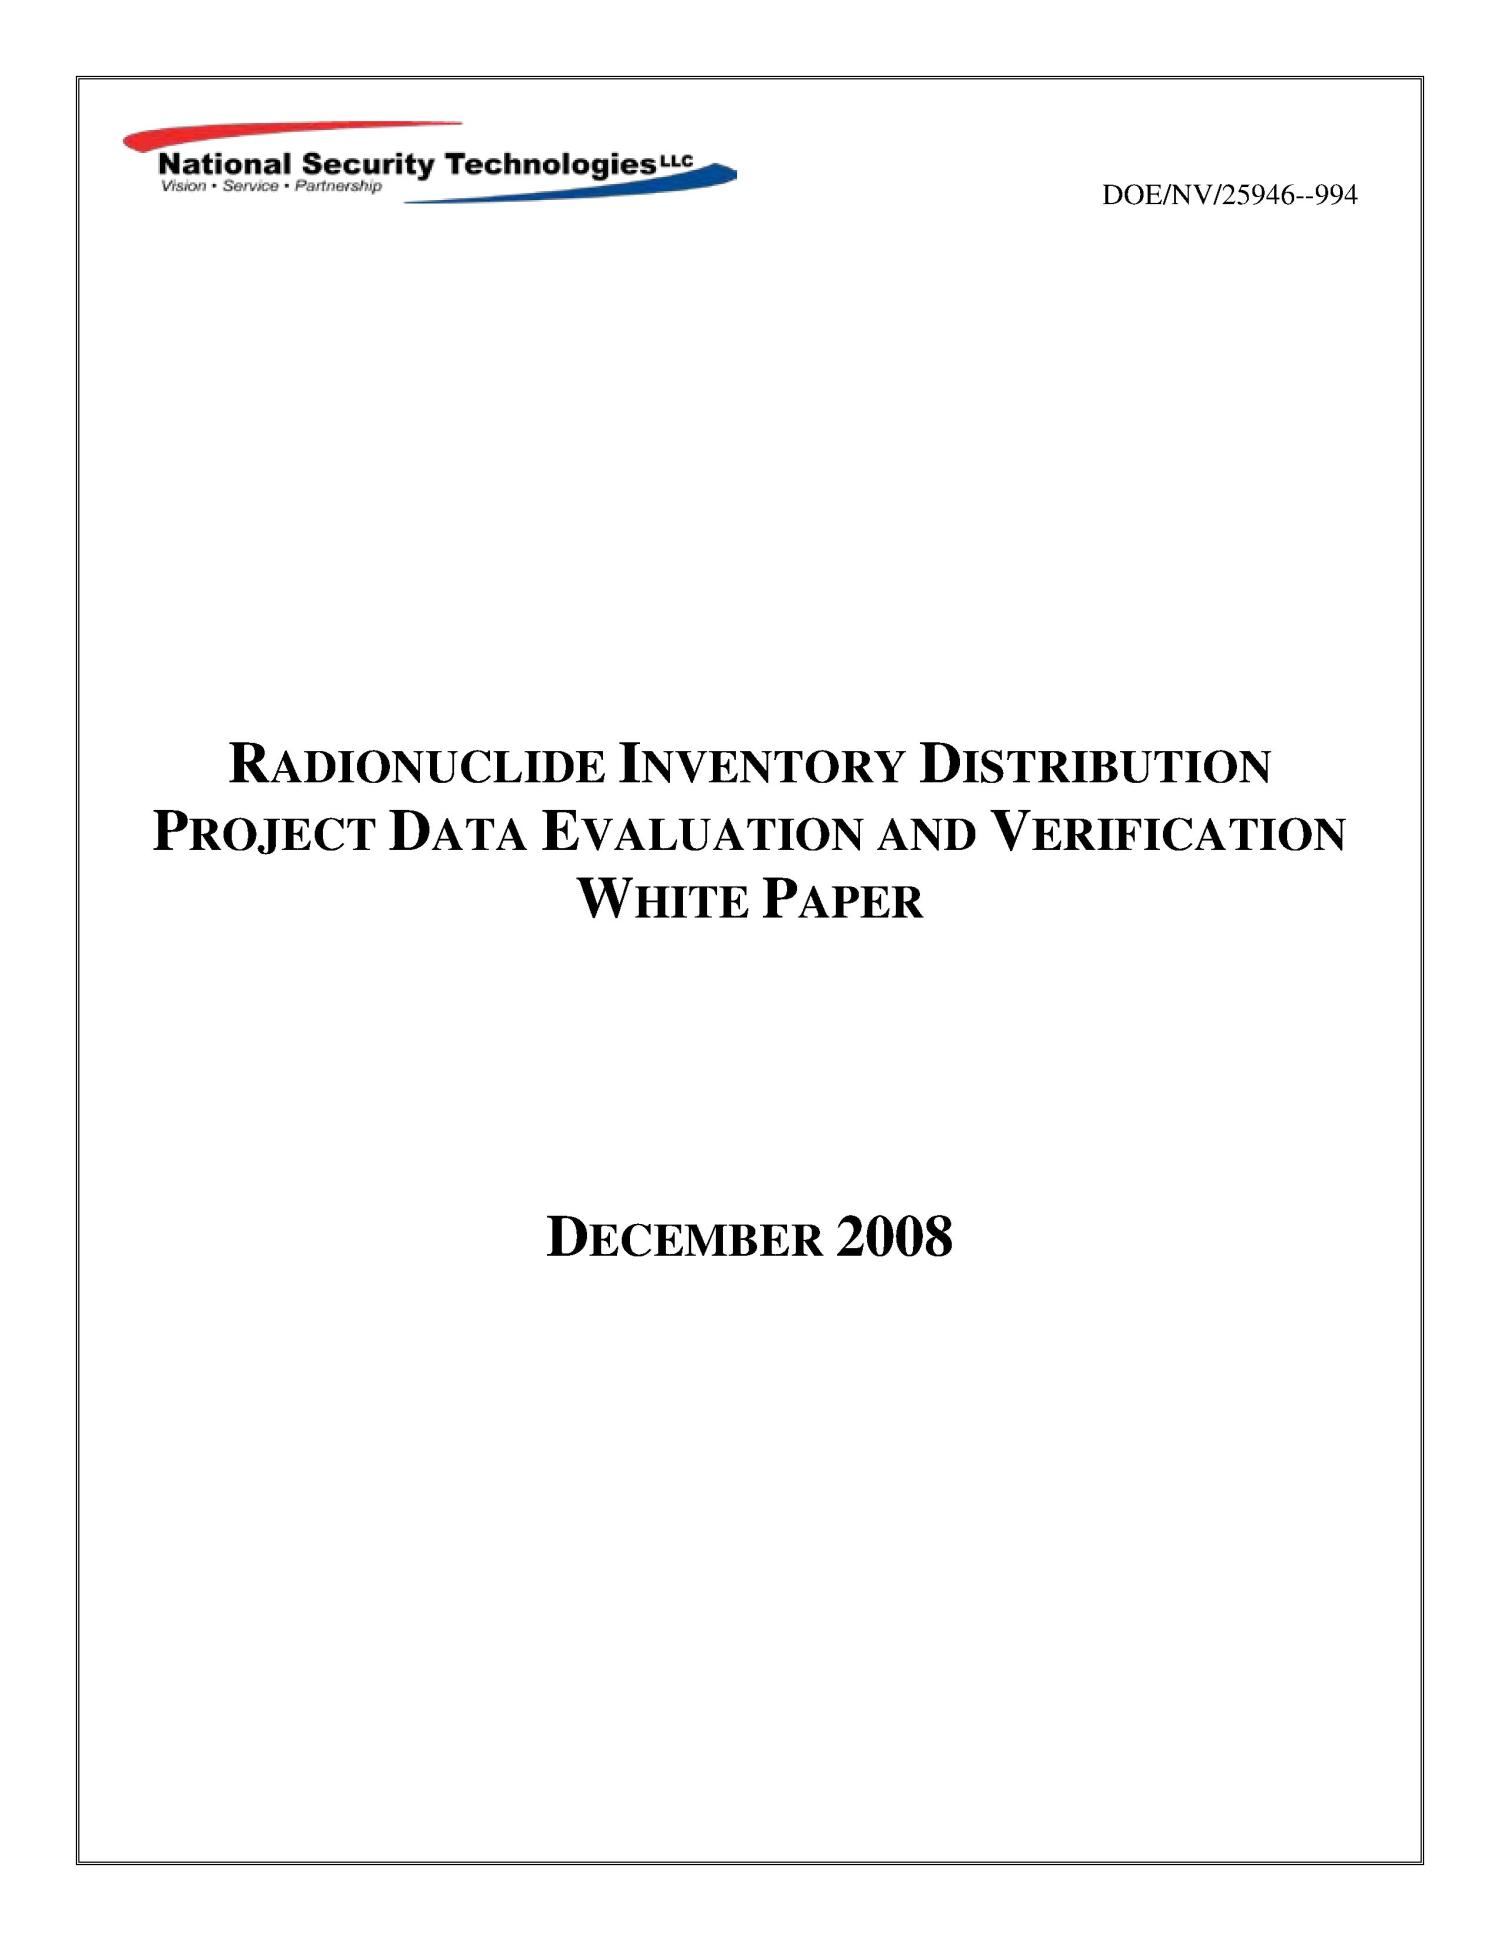 Radionuclide Inventory Distribution Project Data Evaluation and Verification White Paper                                                                                                      [Sequence #]: 1 of 41